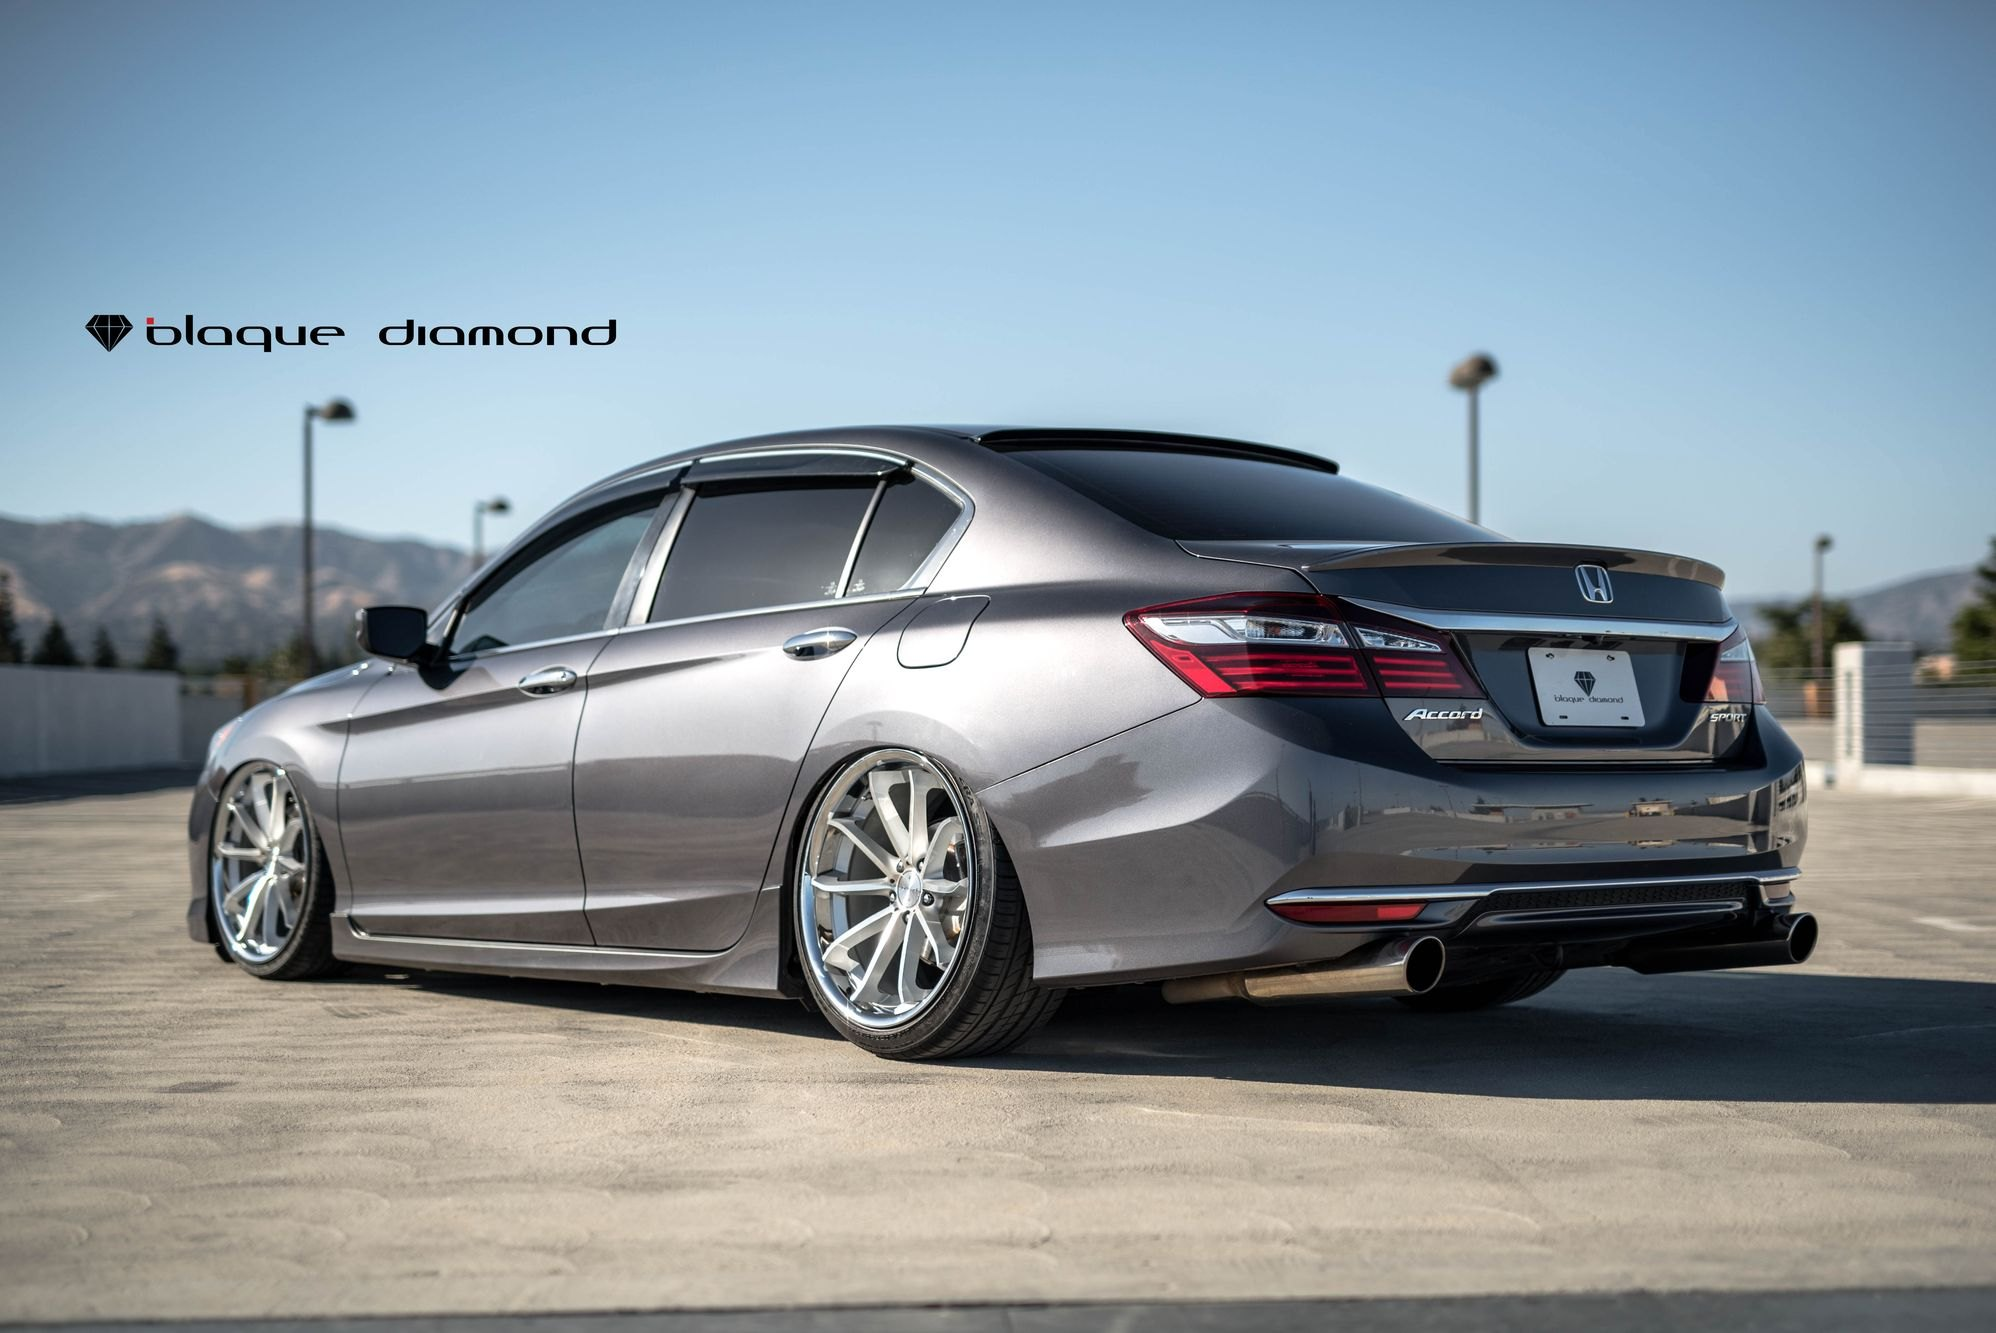 Grand Honda Accord With Solid Gray Exterior Color And